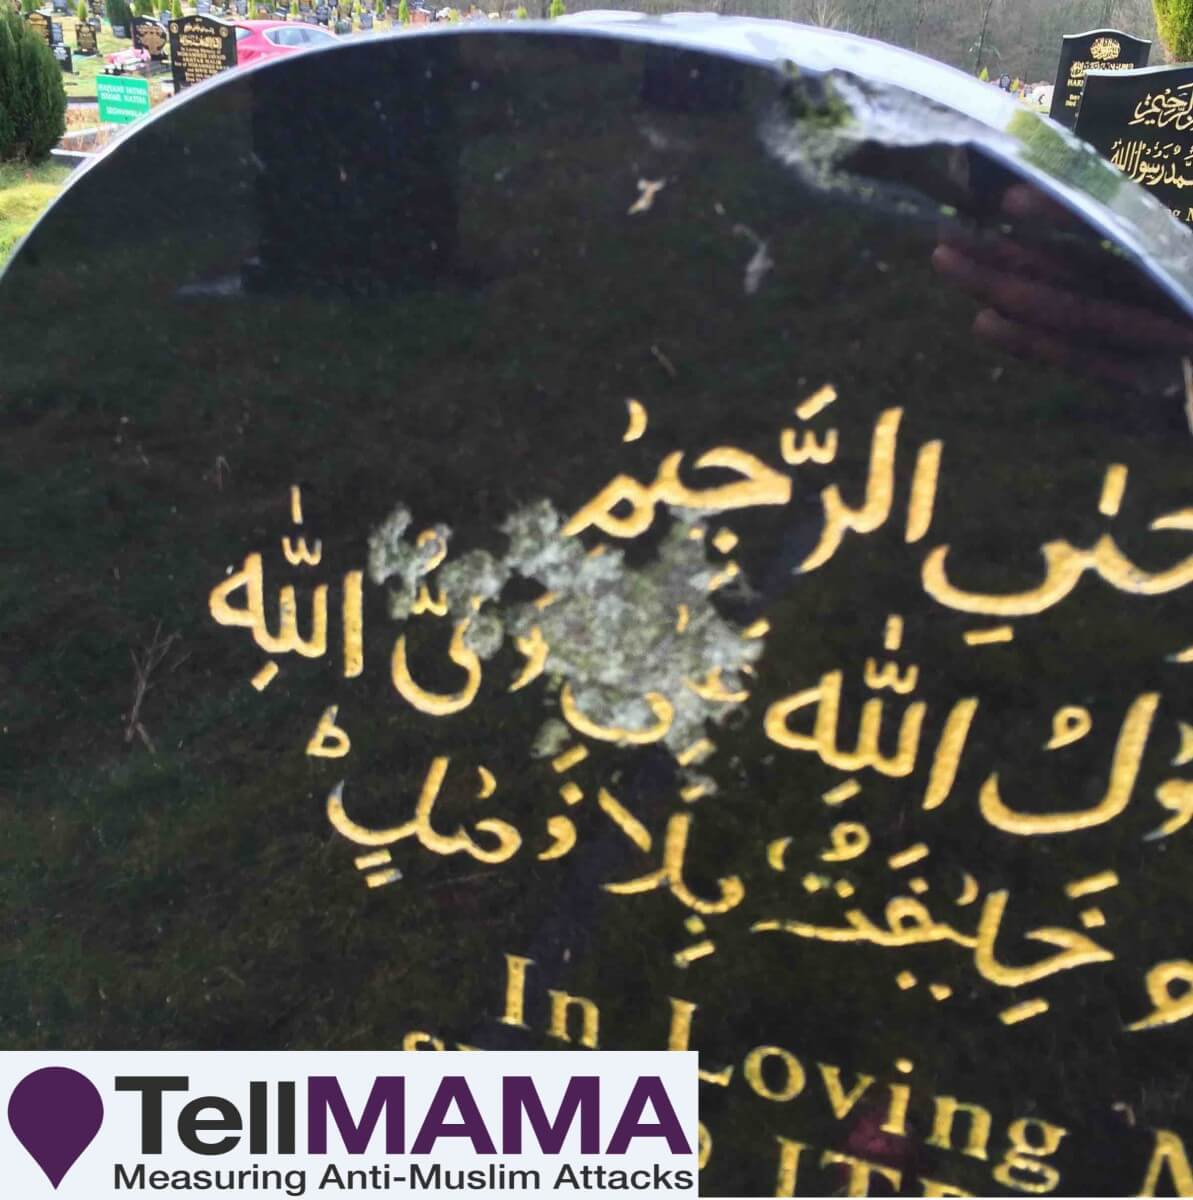 Sickening Shia Hatred in Blackburn Cemetery – A Sign of Sectarian Extremism